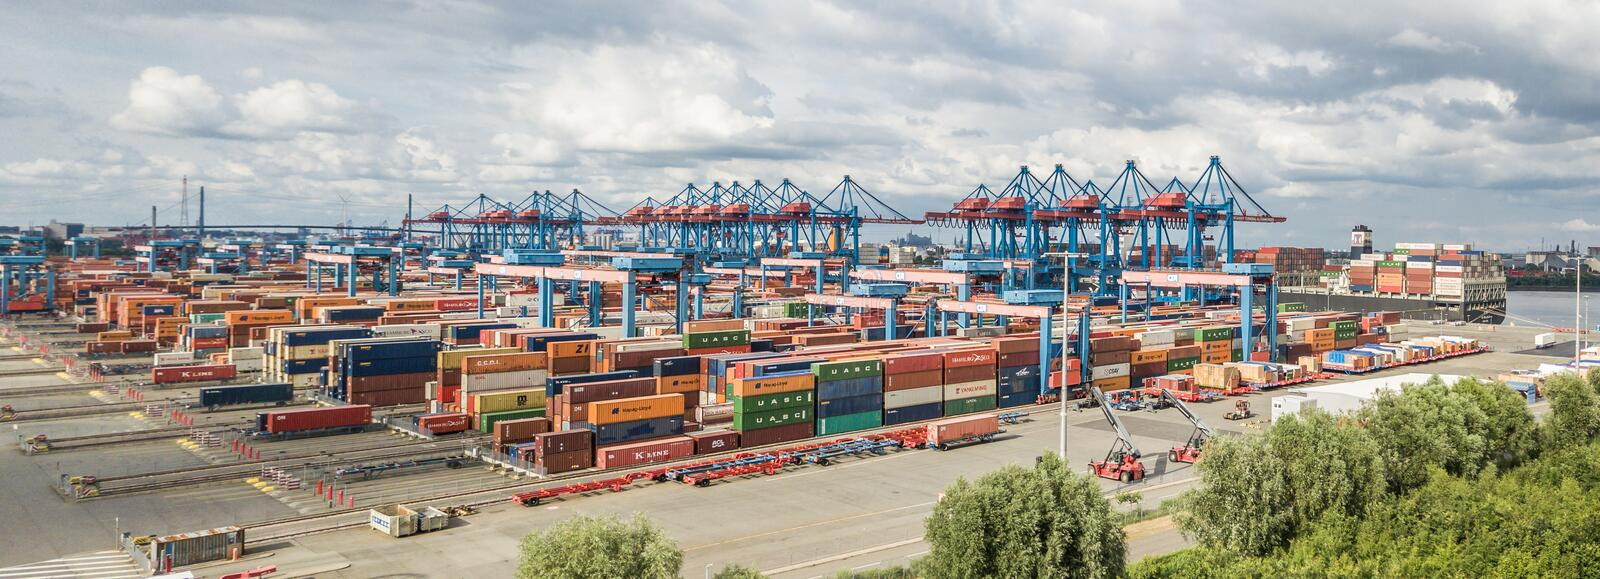 Hamburg , Germany - July 14, 2017: The highly automated container terminal in Altenwerder is one of the most modern and. HAMBURG , GERMANY - JULY 15, 2017: The stock image